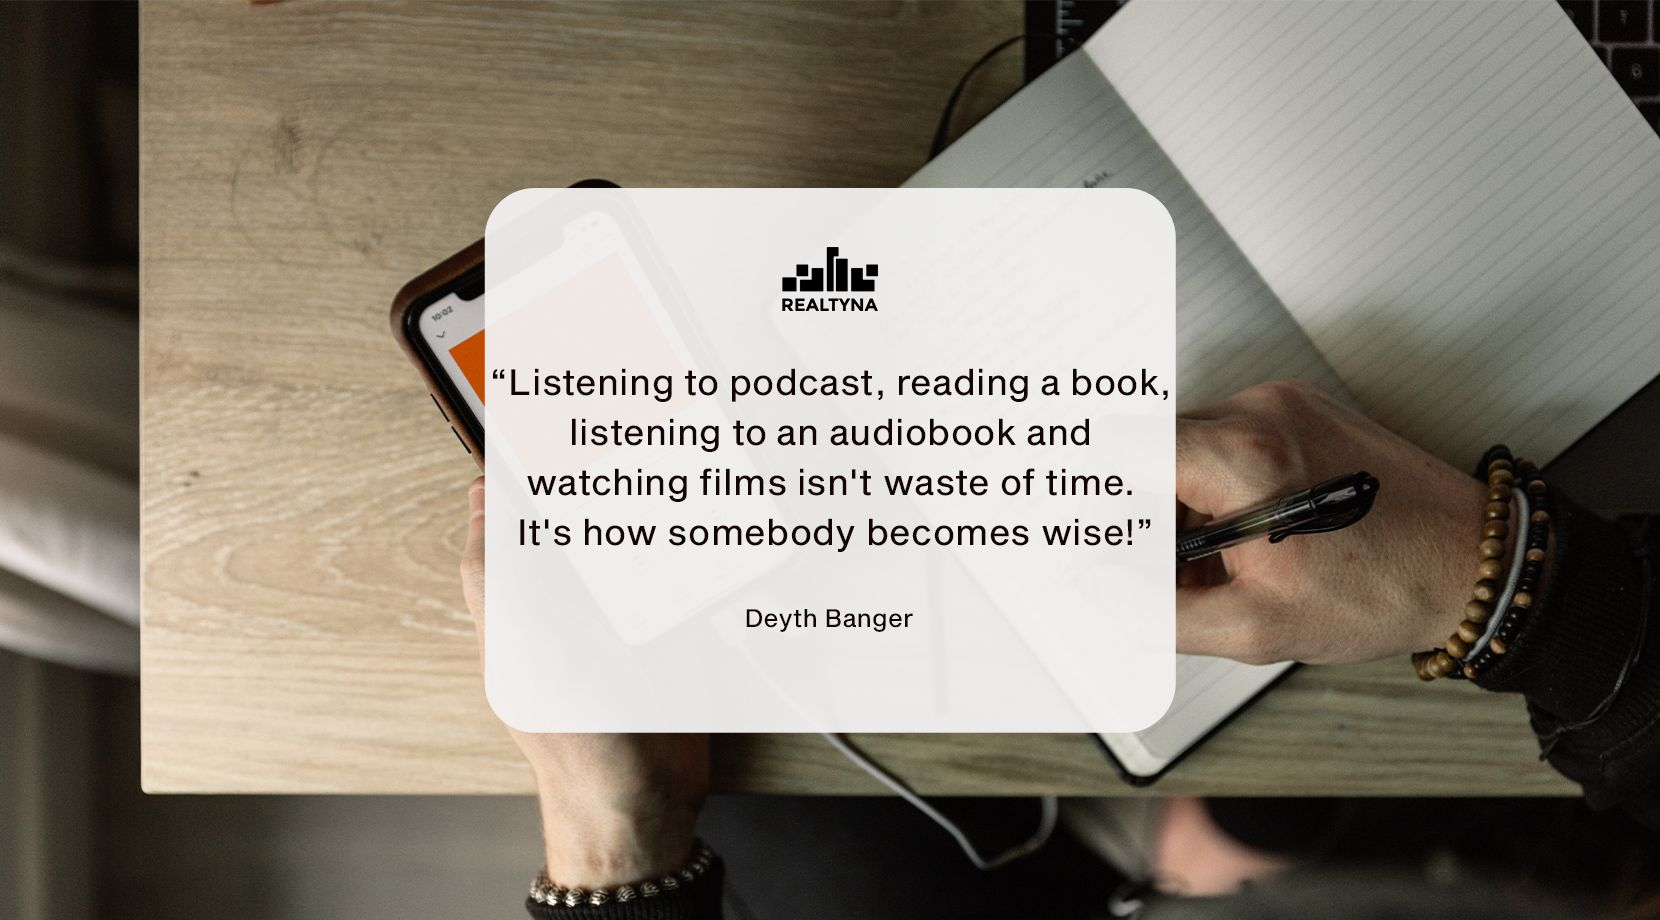 """""""Listening to a podcast, reading a book, listening to an audiobook and watching films isn't a waste of time. It's how somebody becomes wise!"""" (Deyth Banger)"""